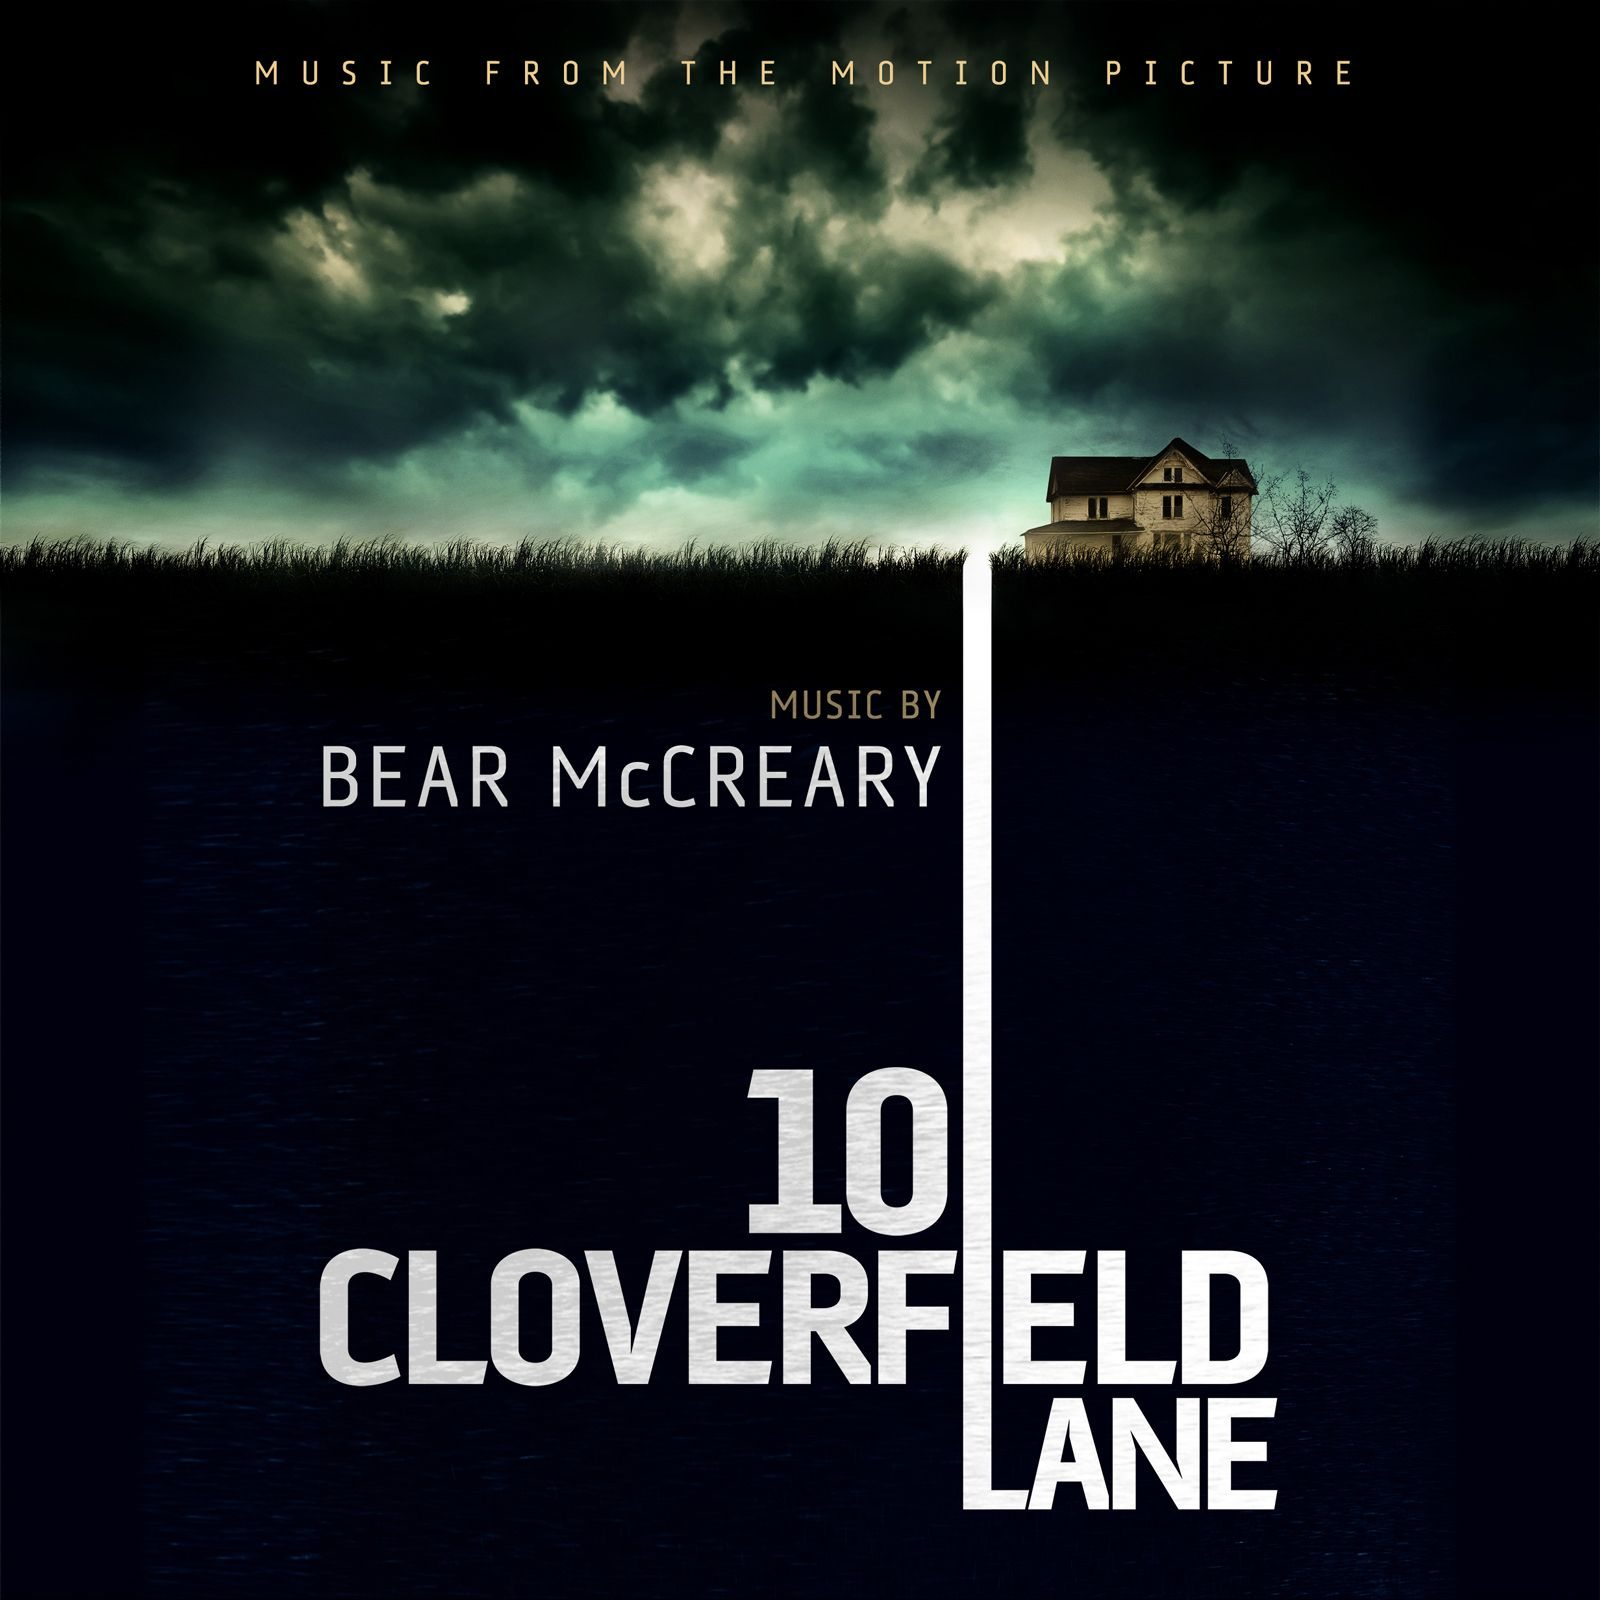 10 Cloverfield Lane Soundtrack Bear Mccreary Cloverfield Lane 10 Cloverfield Lane Bear Mccreary